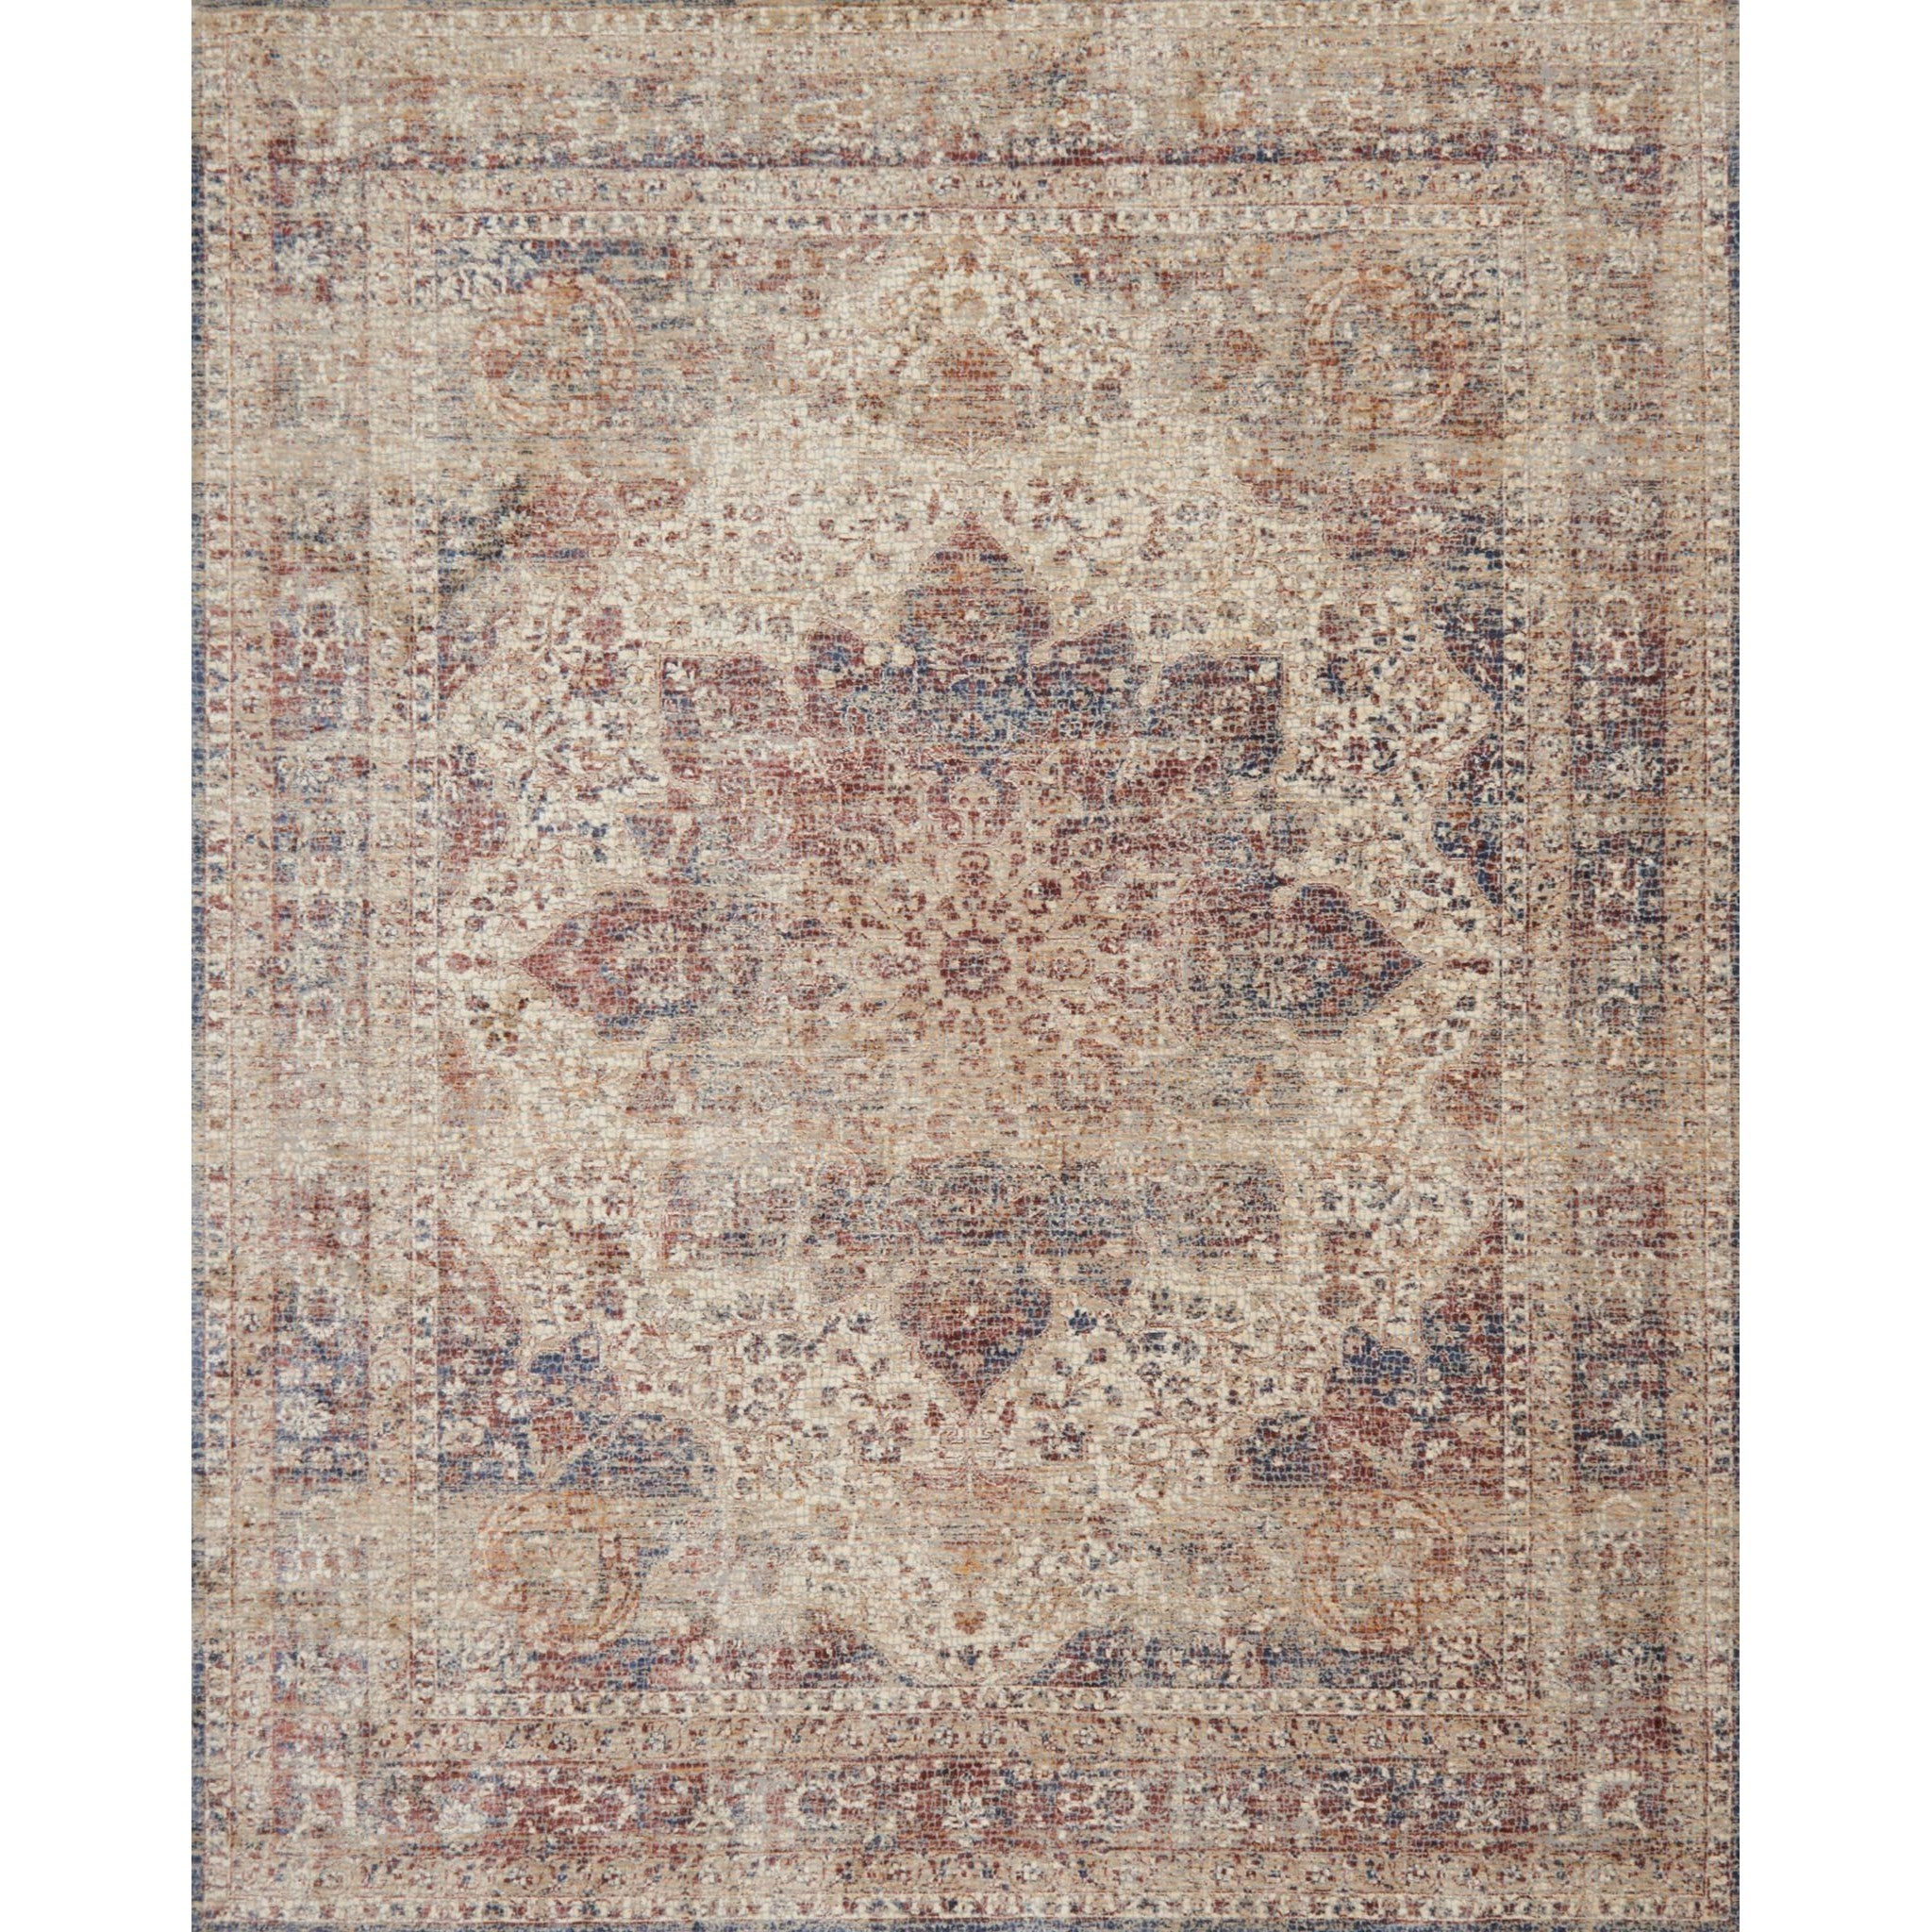 "Porcia 6'-7"" X 9'-4"" Area Rug by Loloi Rugs at Pedigo Furniture"